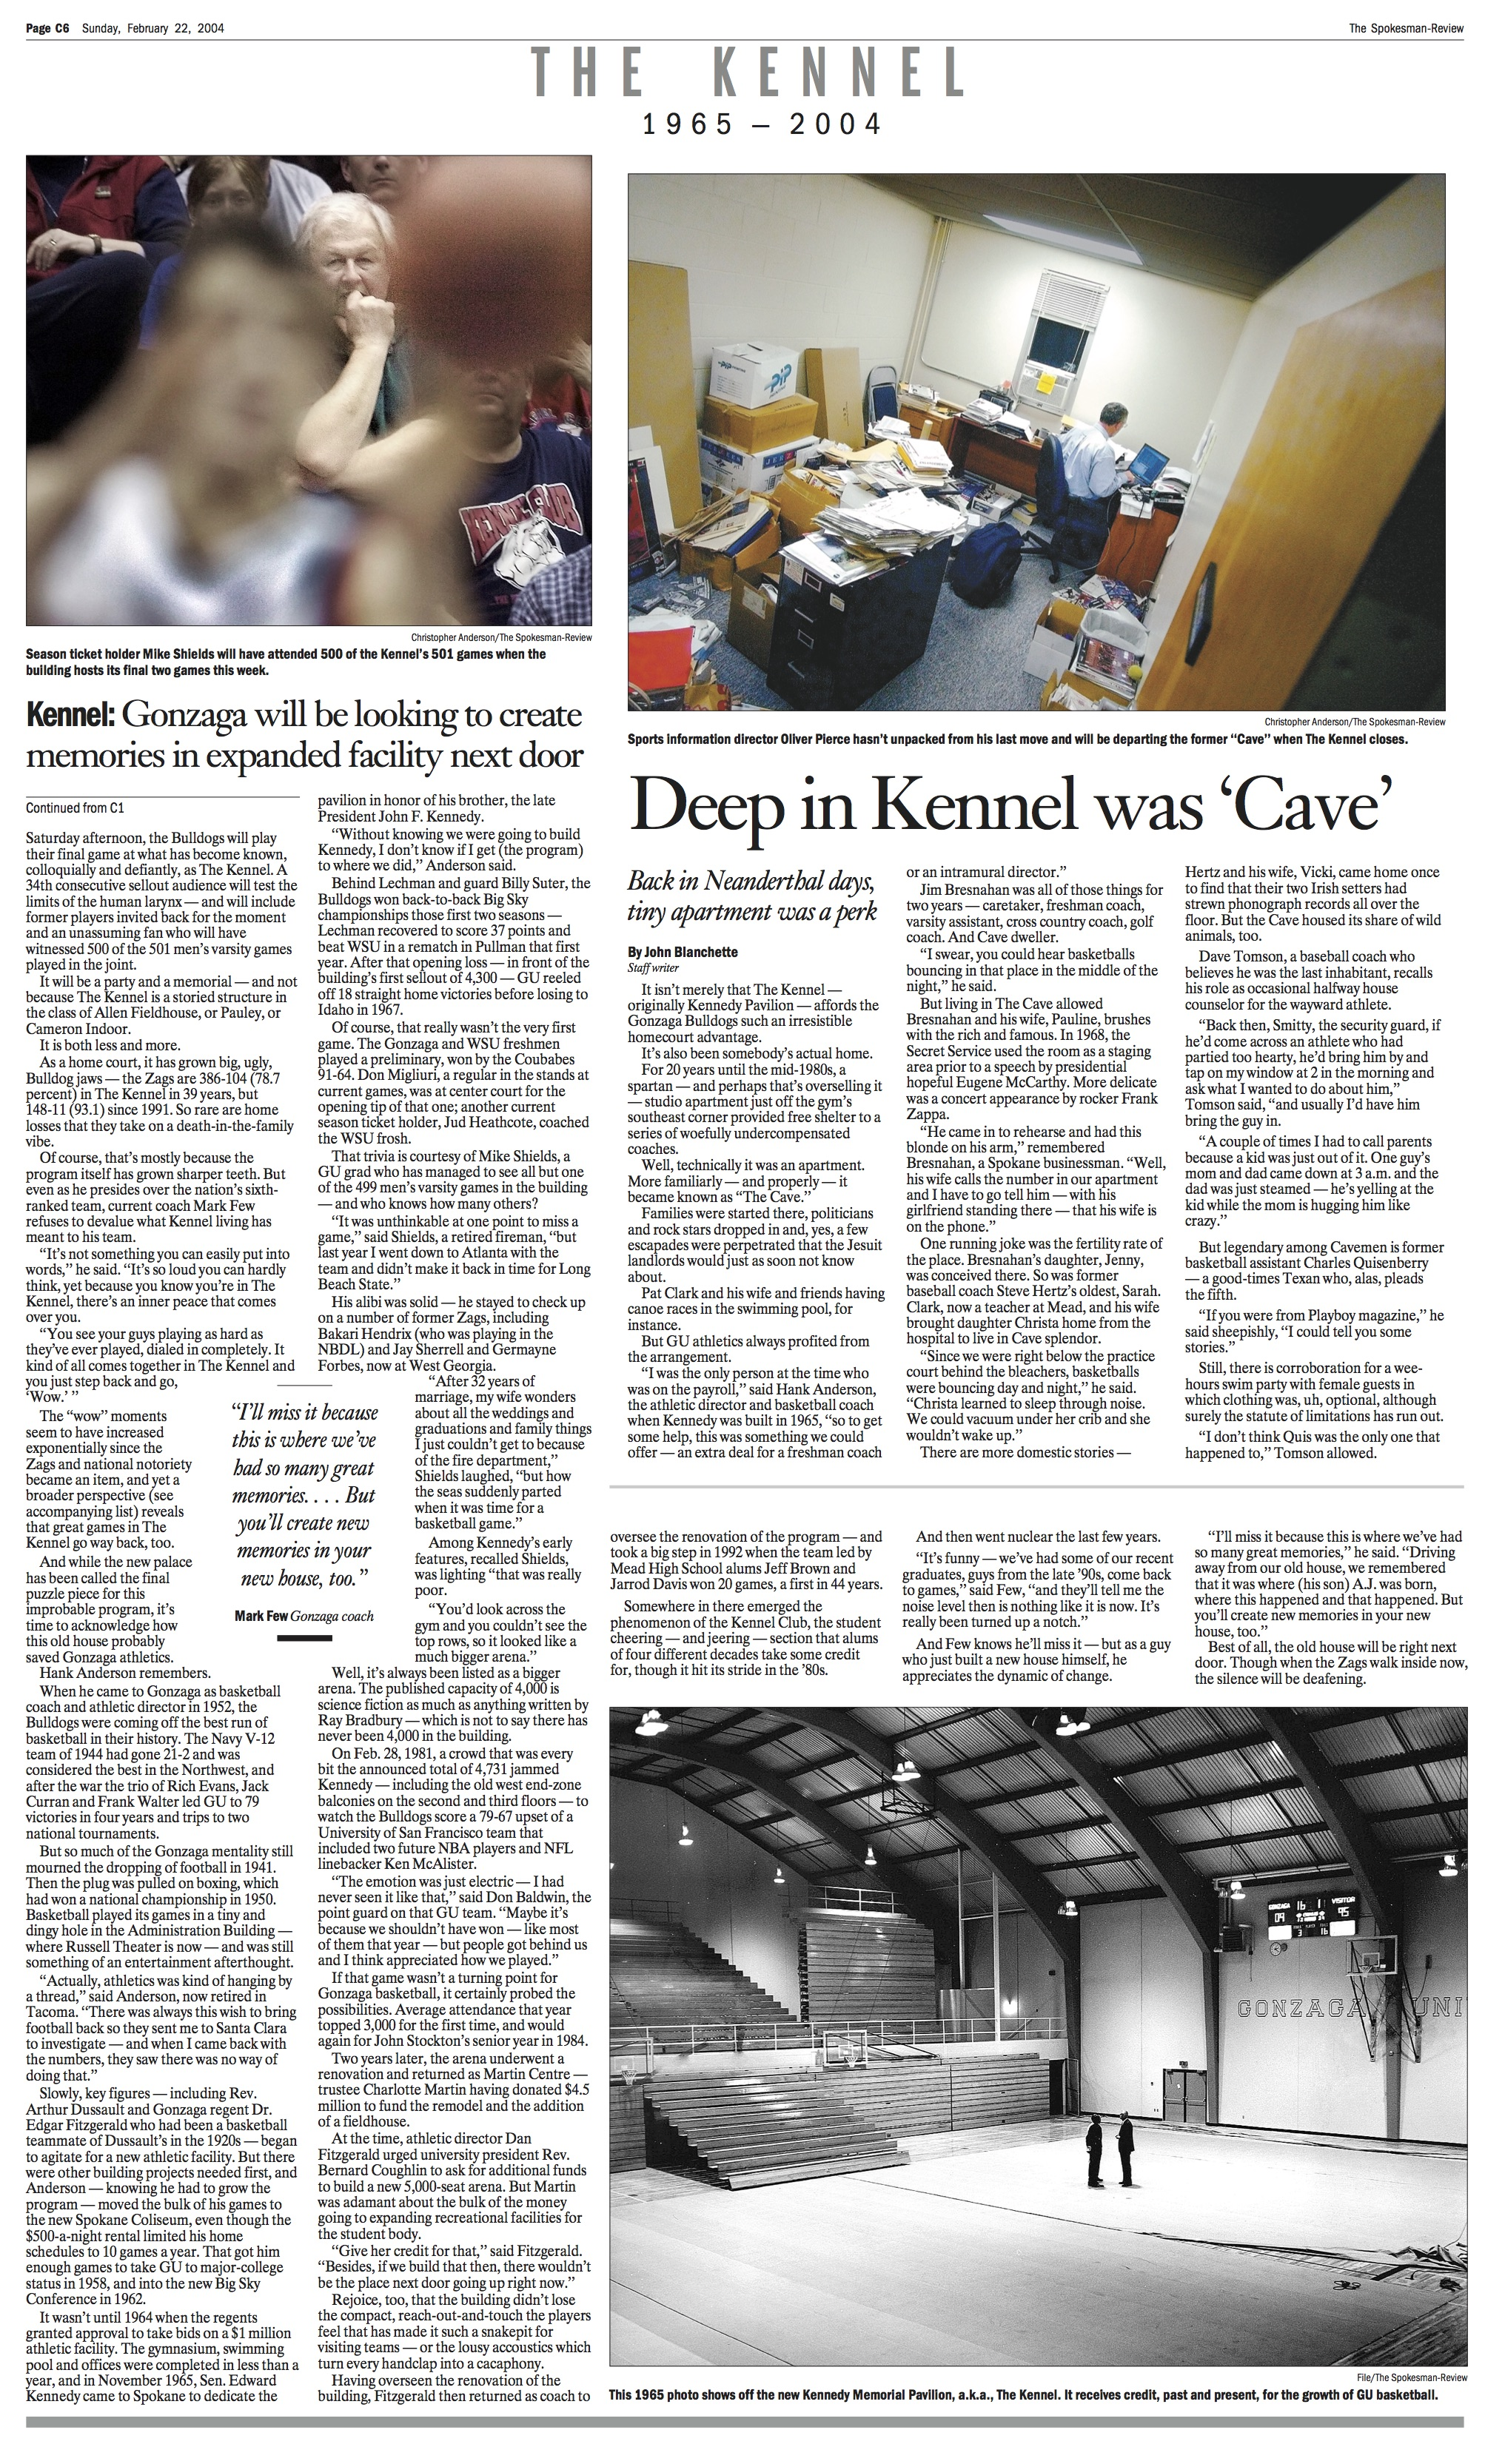 Historic page: Feb. 2, 2004, Kennel farewell